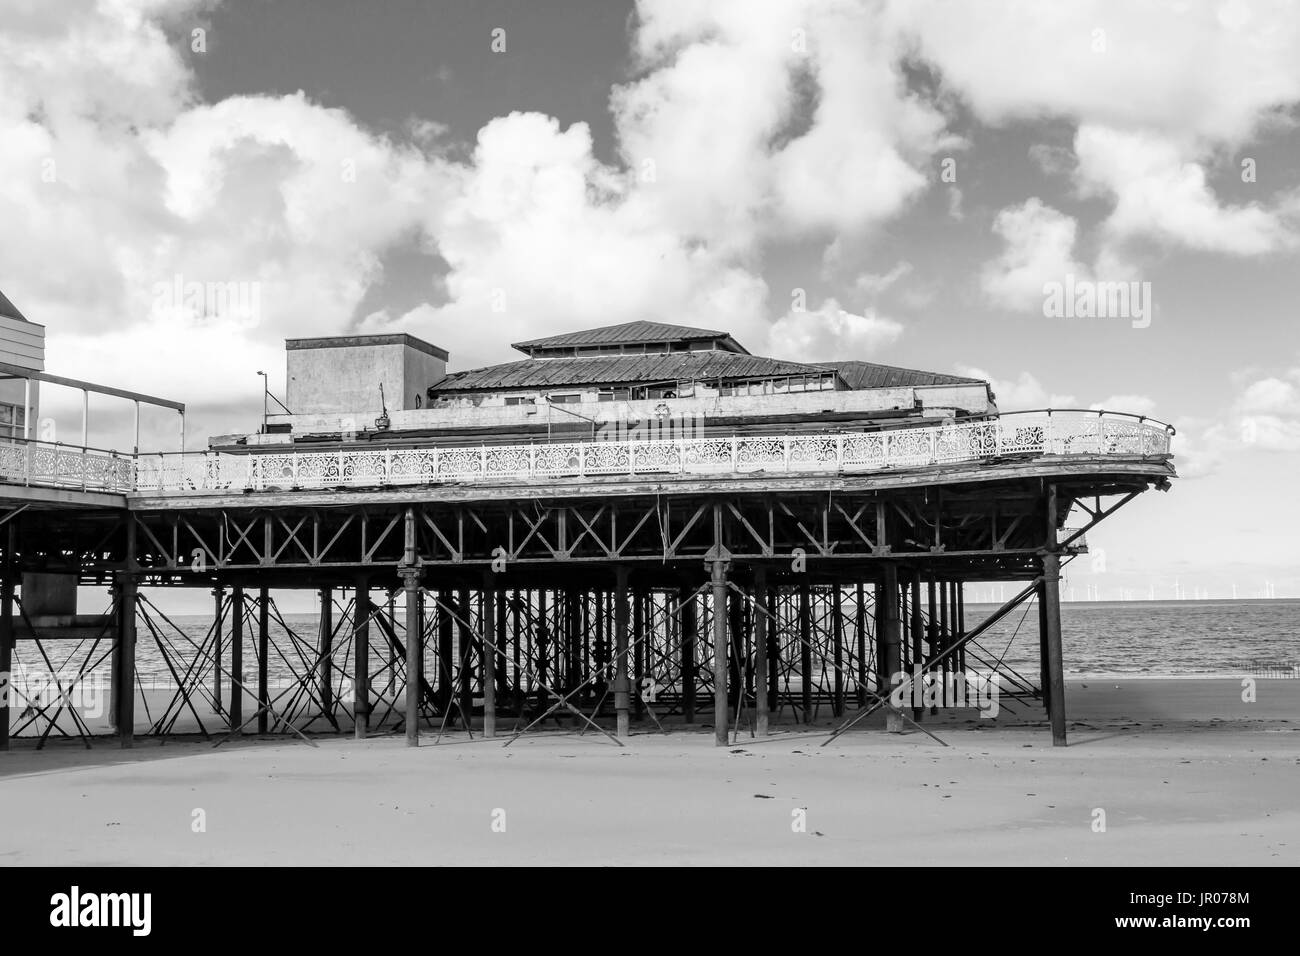 A view of the end of Victorian Pier in Colwyn Bay, North Wales.  The image was taken on a bright sunny day and converted to monochrome - Stock Image